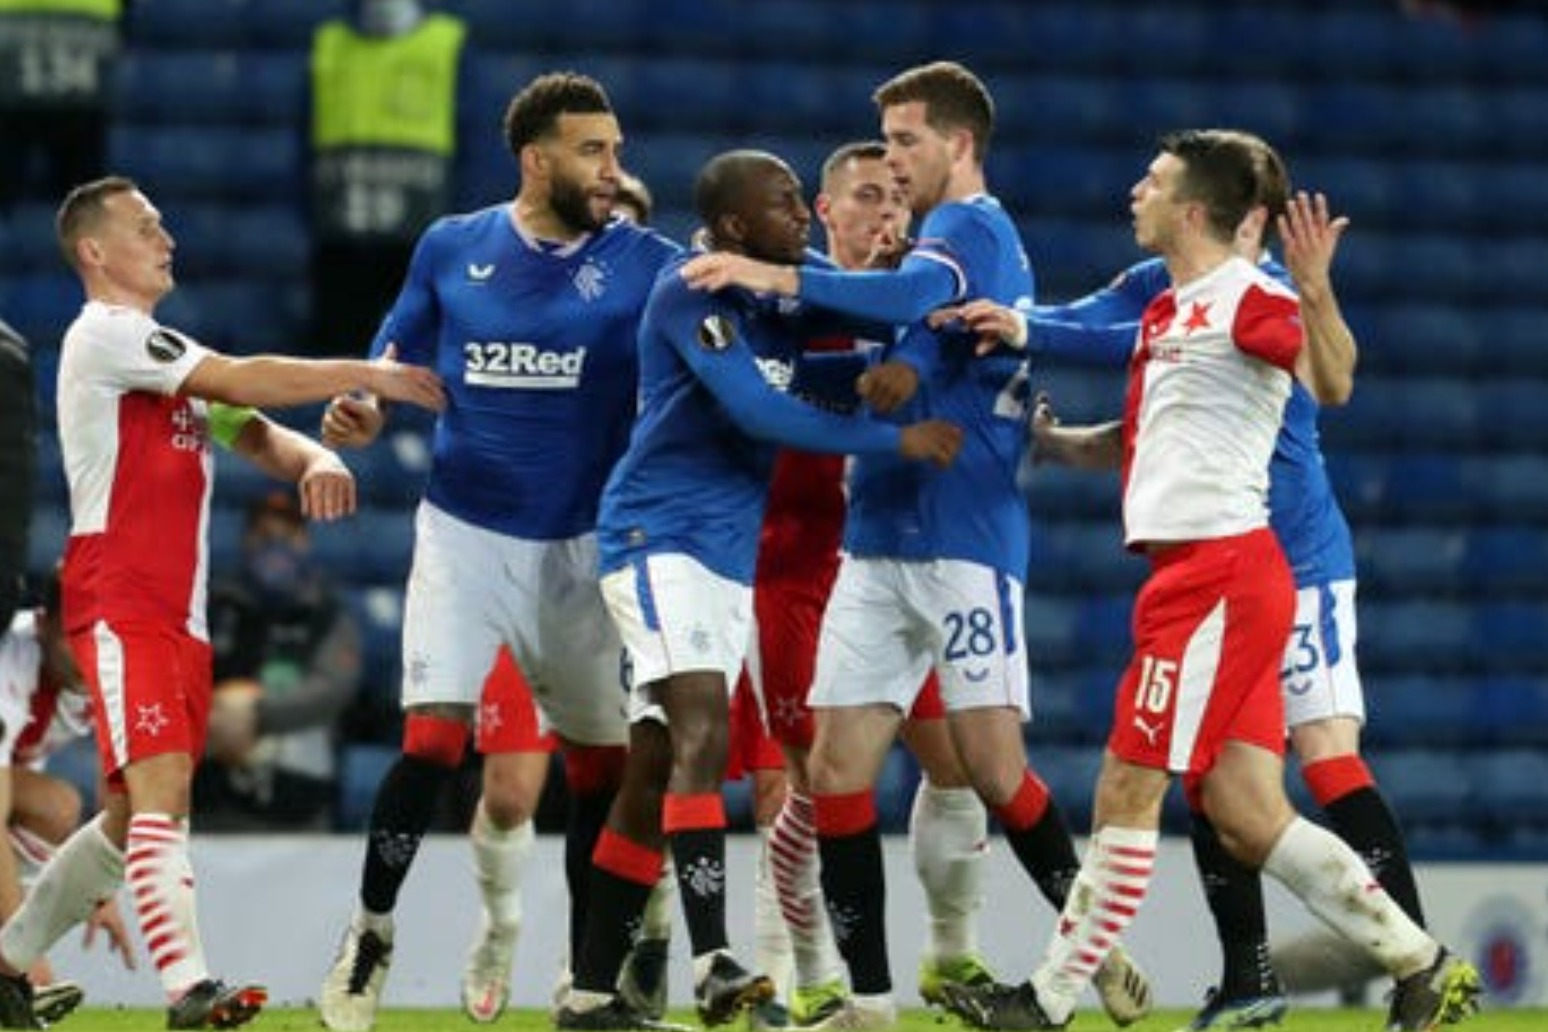 UEFA opens investigation into Rangers-Slavia Prague incidents